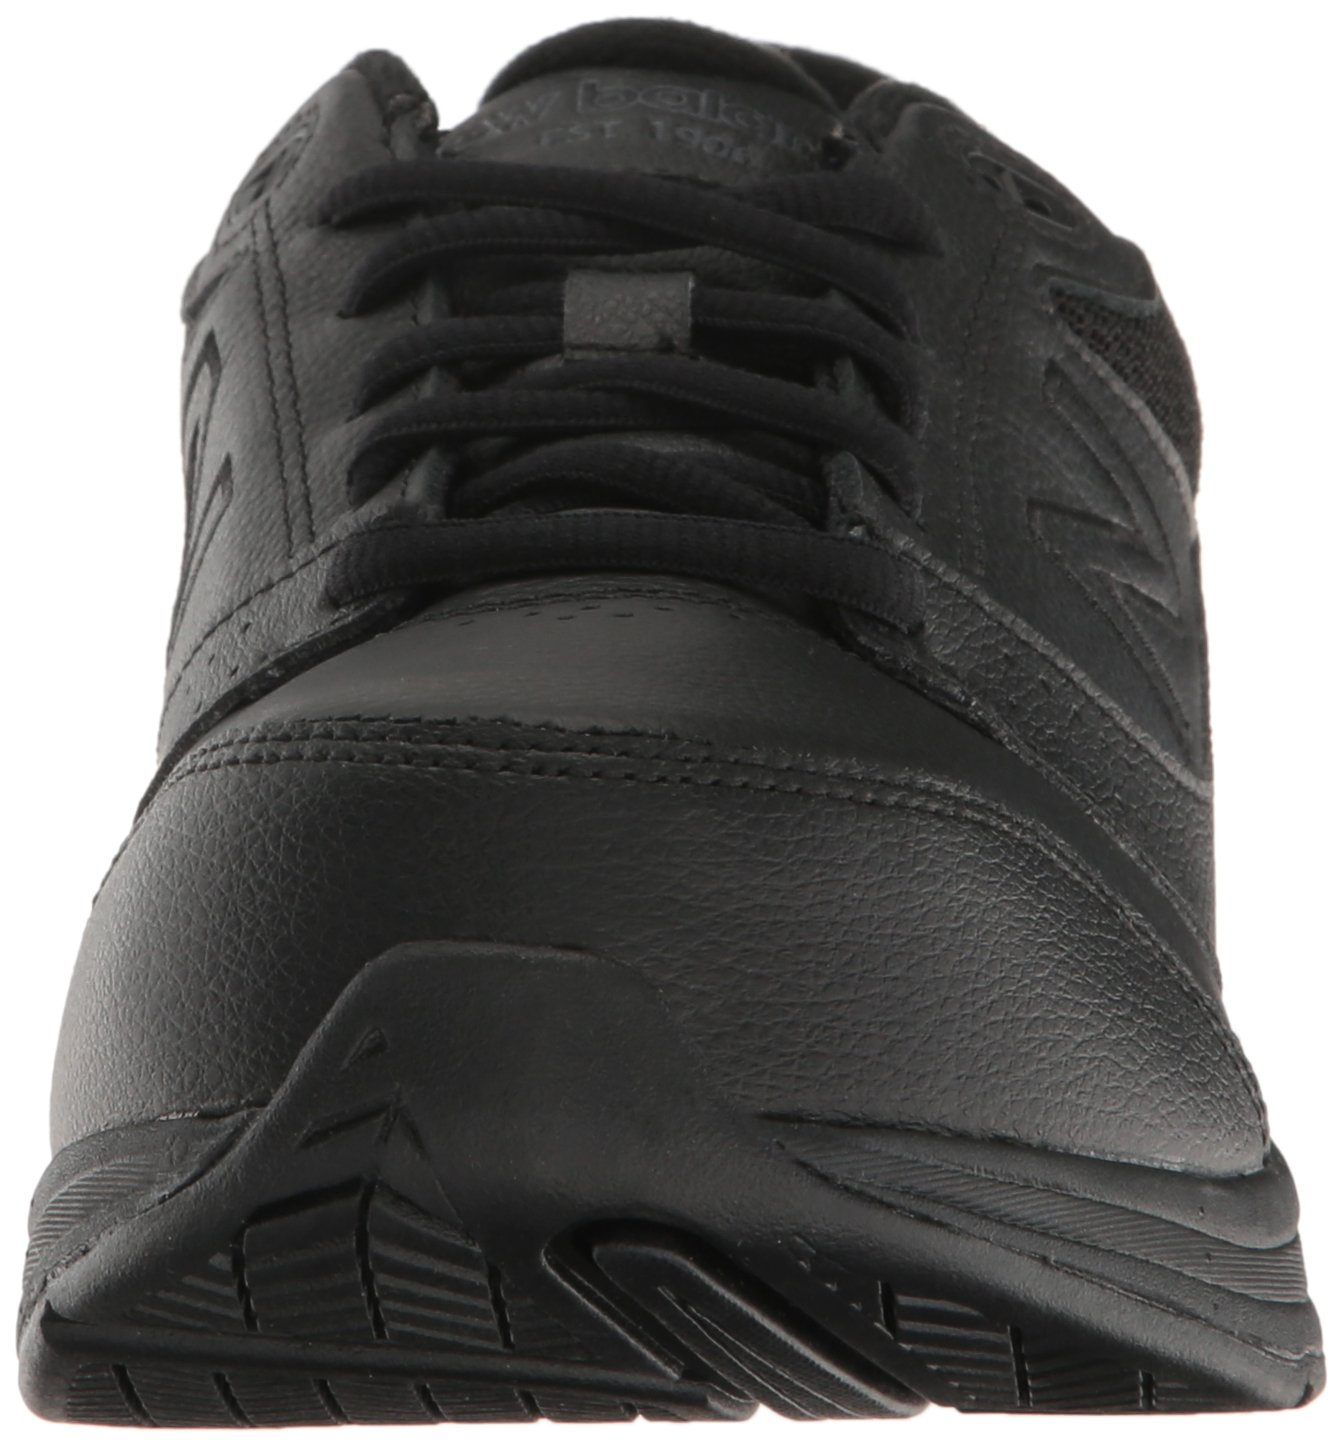 New Balance Women's Womens 928v3 Walking Shoe Walking Shoe B01N66IEQM 8.5 2E US|Black/Black